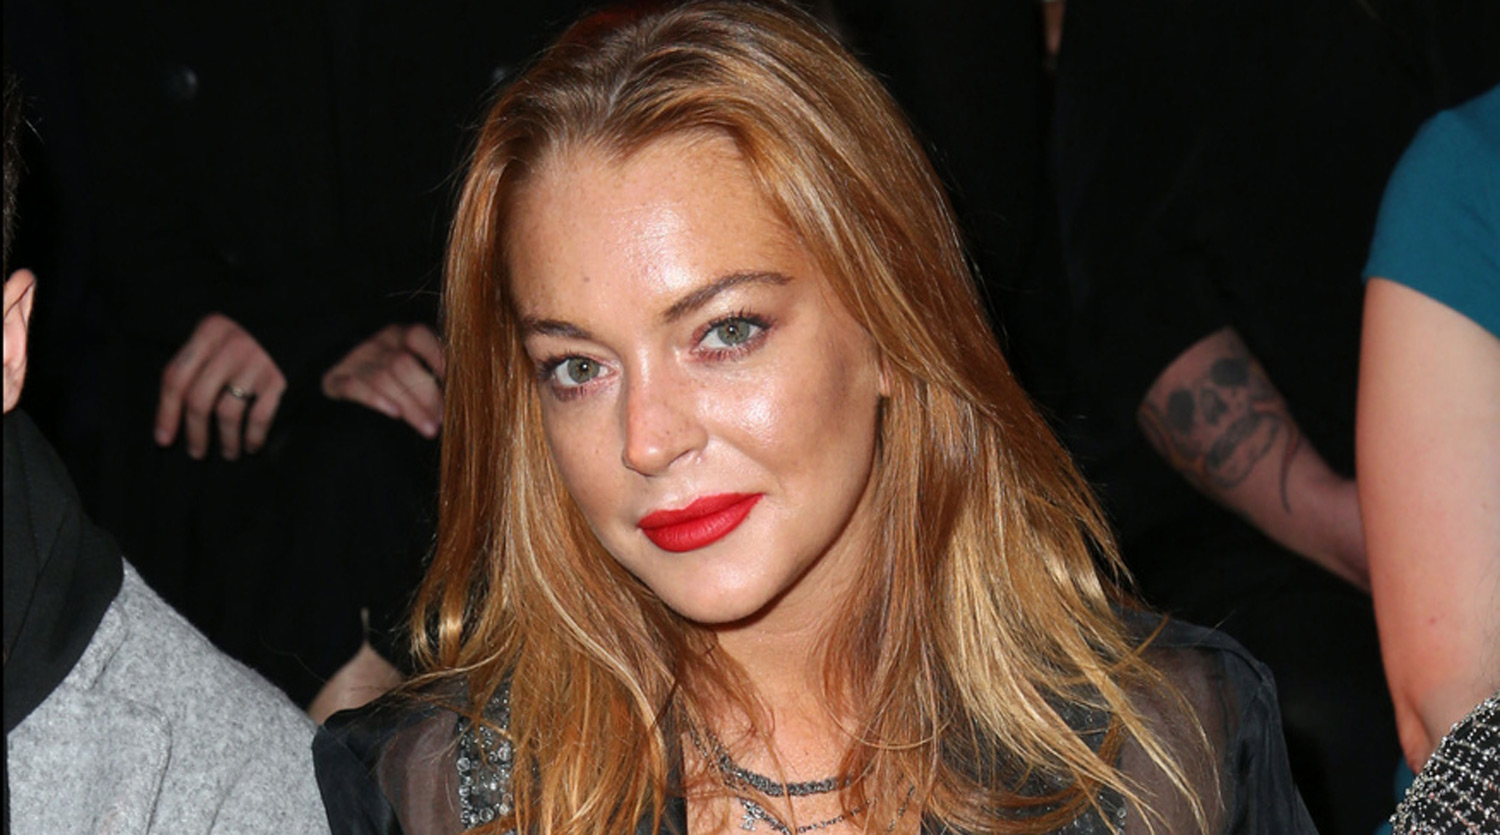 Lindsay Lohan Gets Trapped In An Elevator During London Fashion Week ...